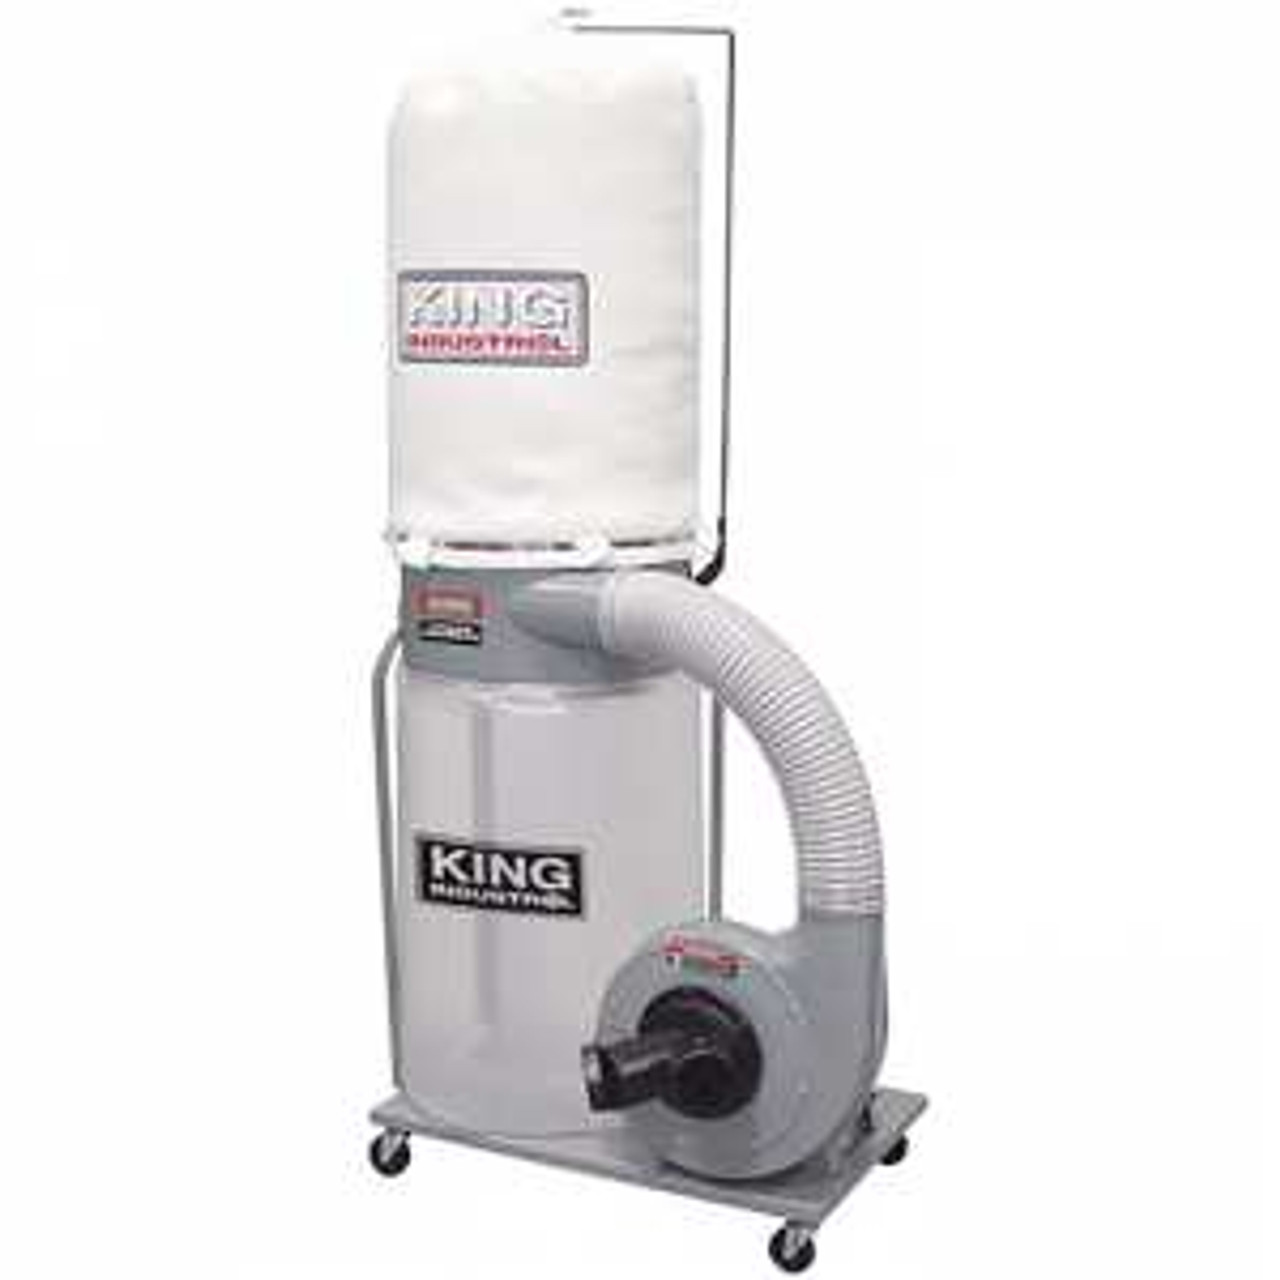 King Industrial KC-3105C 1-1/2HP Dust Collector